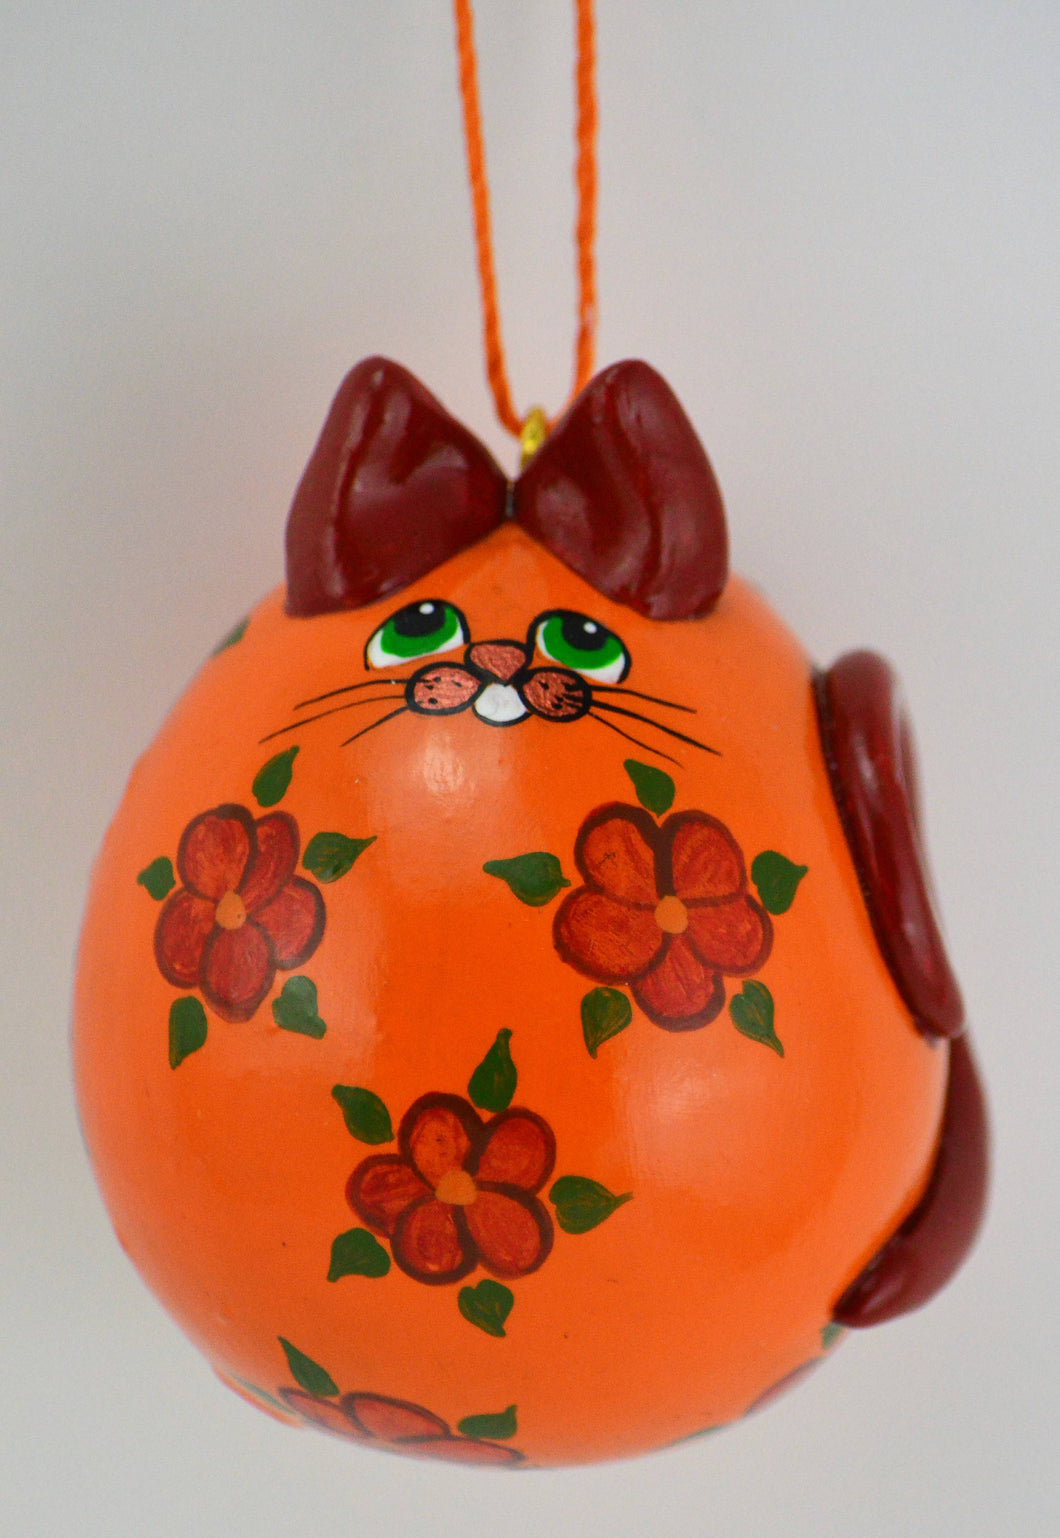 Cat Ornament - Kitty Ornament - Kitten Ornament - Calico Cat Ornament - Orange Floral Cat - Gourd Art - Gourd Ornament - Christmas Ornament - Gourdaments